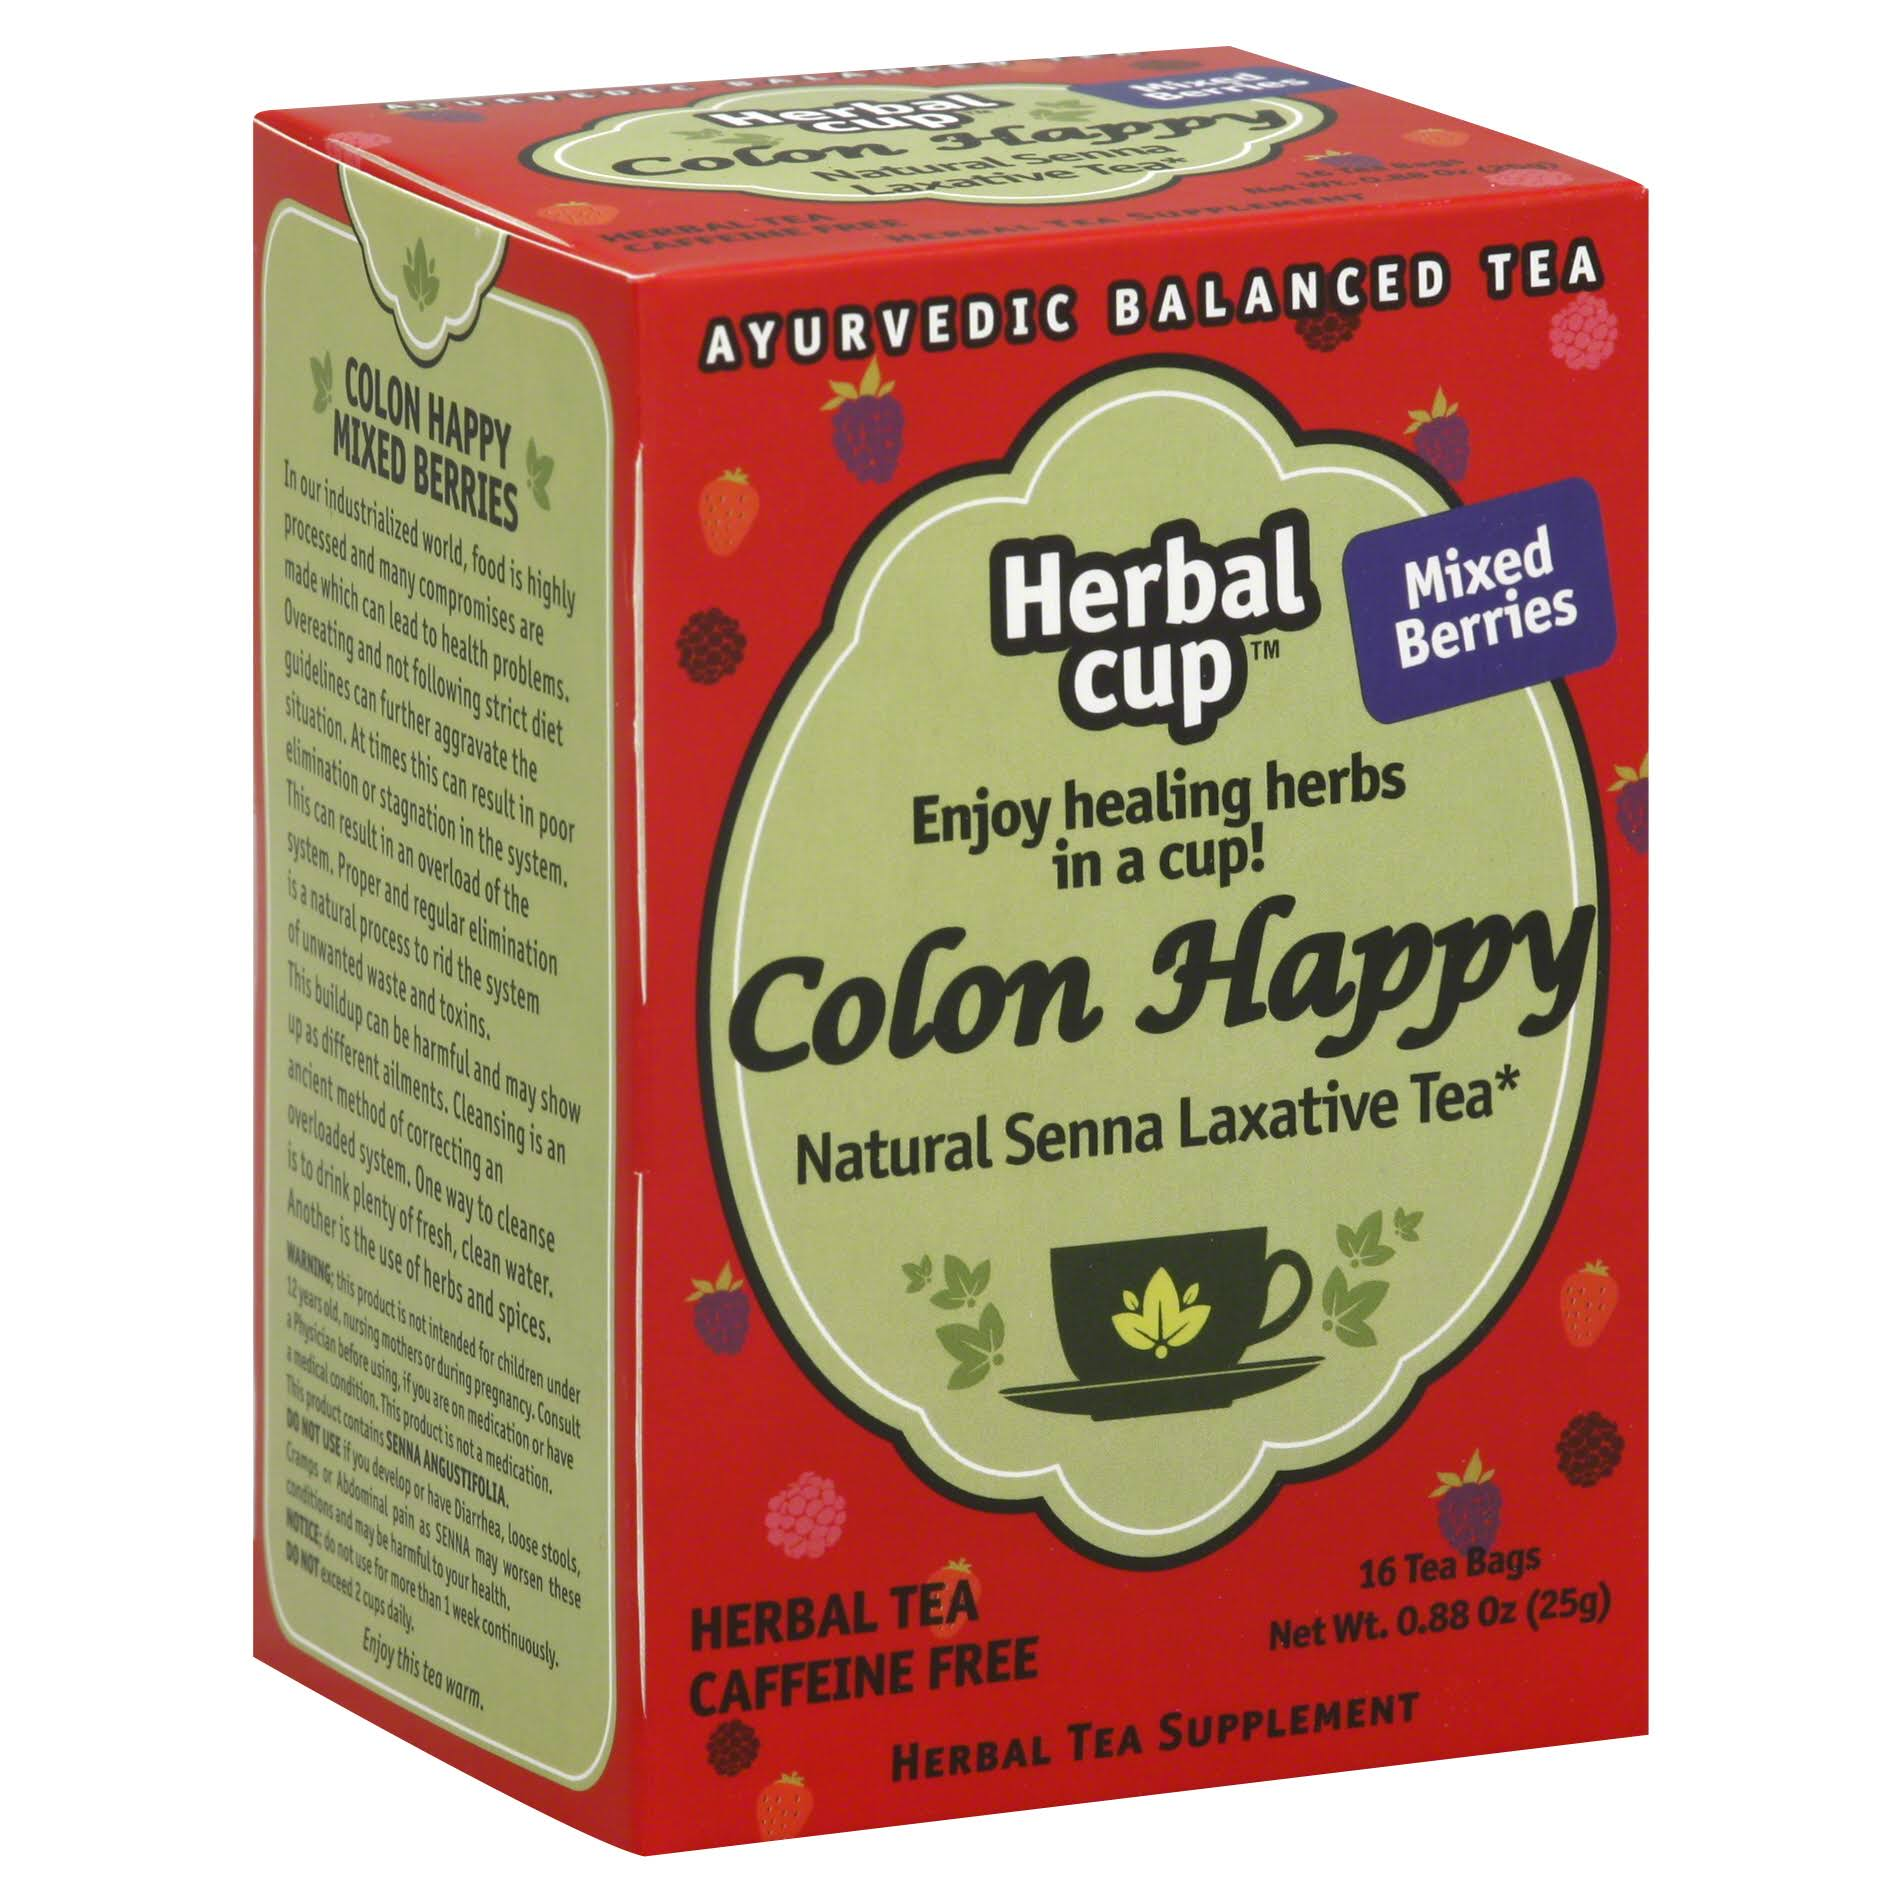 Herbal Cup Colon Happy Natural Senna Laxative Tea - Mixed Berries, x16